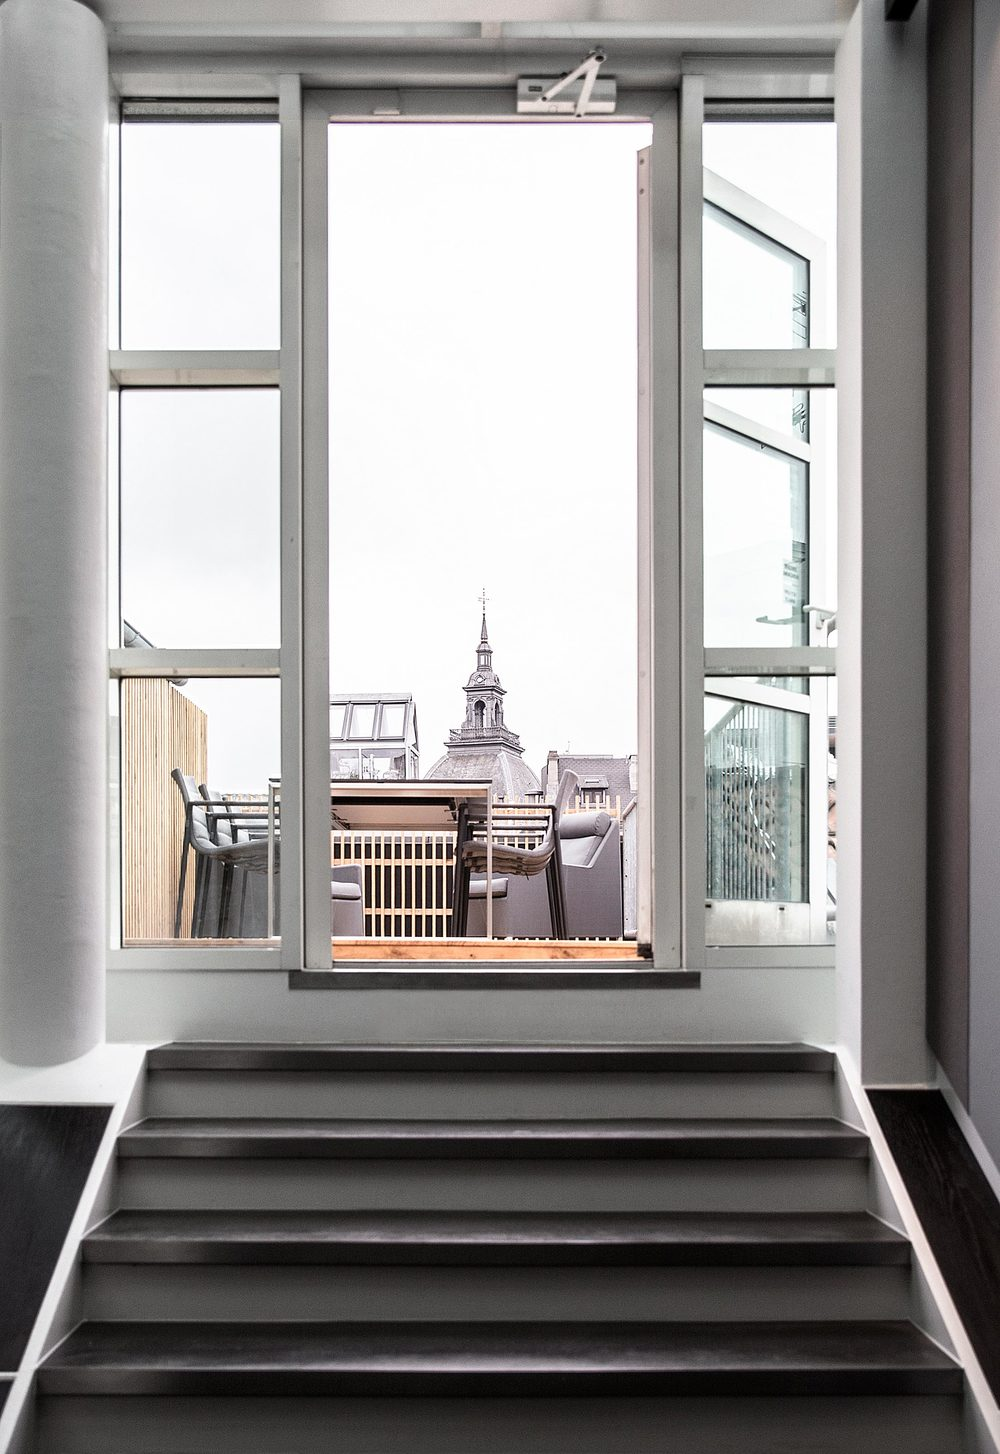 Stairs up to the roof terrace at the Gefion office with a view over the old town of Copenhagen